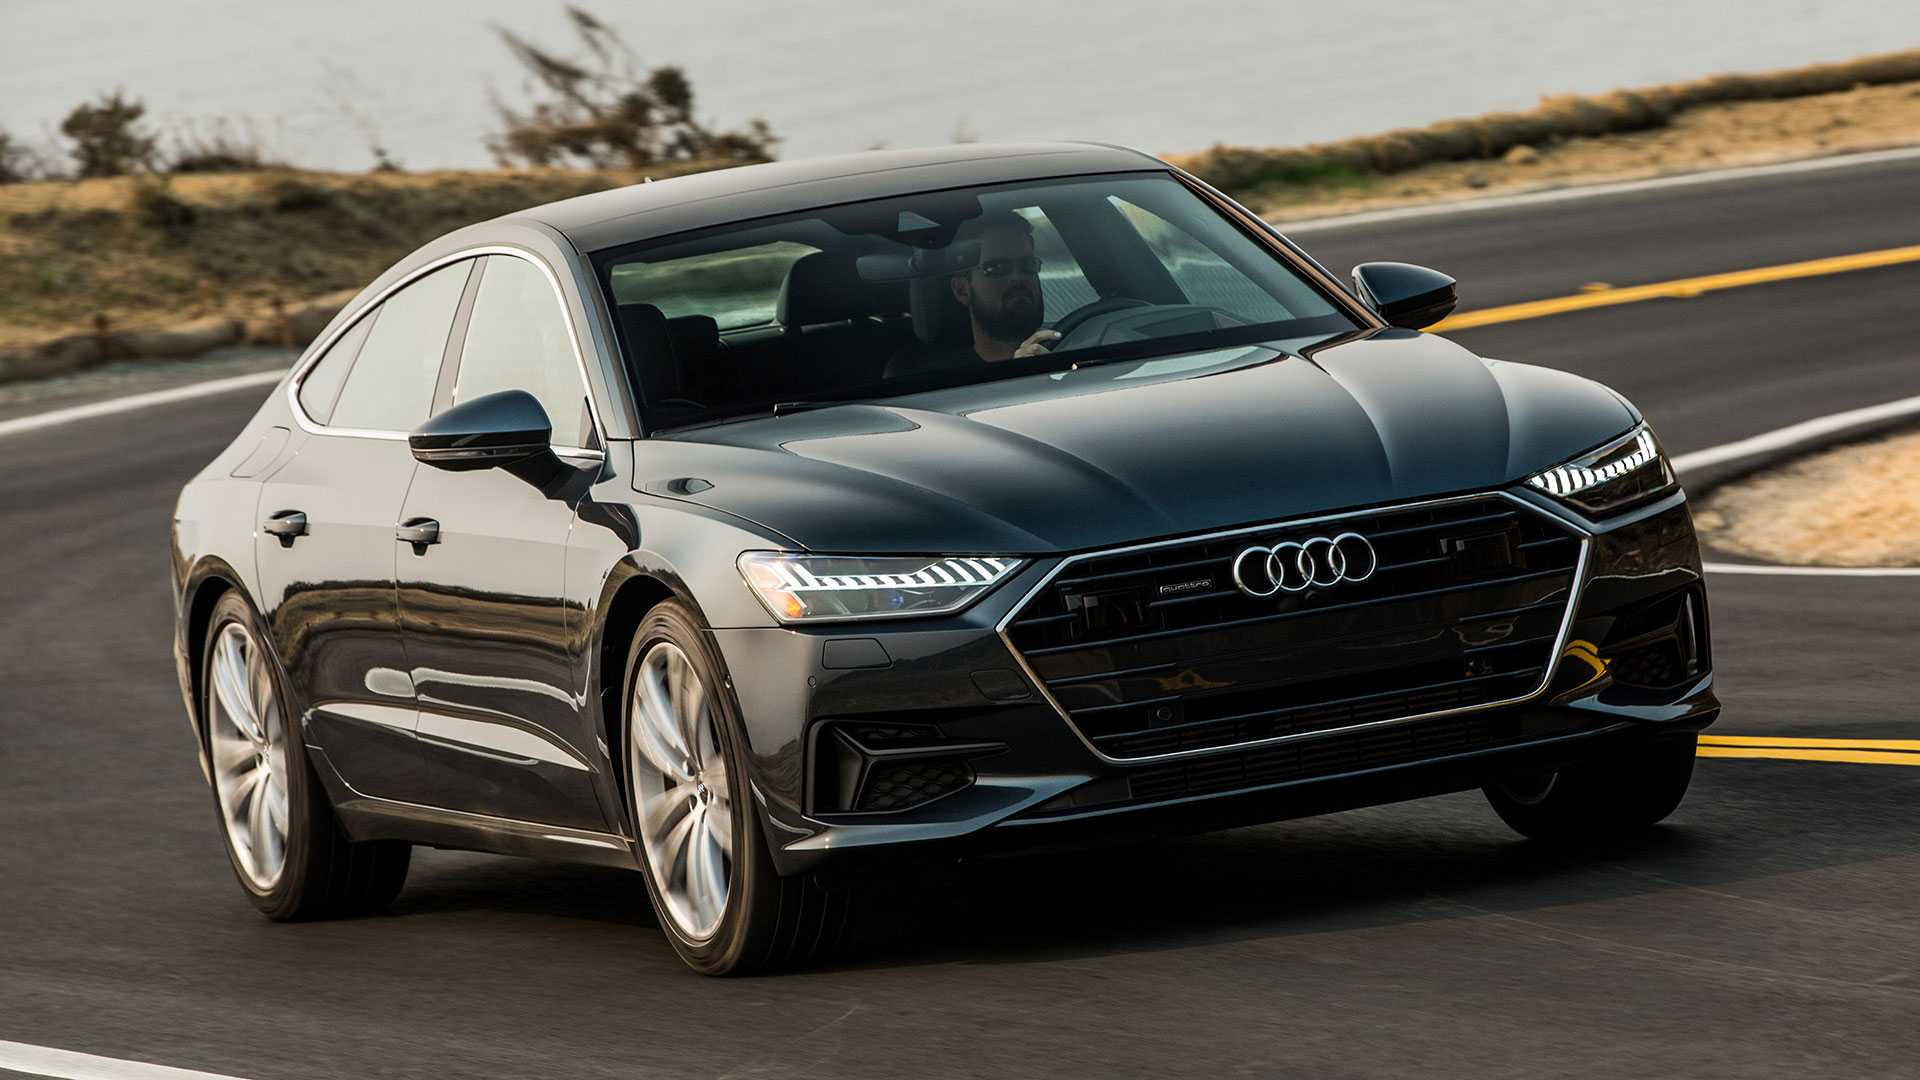 97 The Best 2019 Audi A7 Colors Rumors